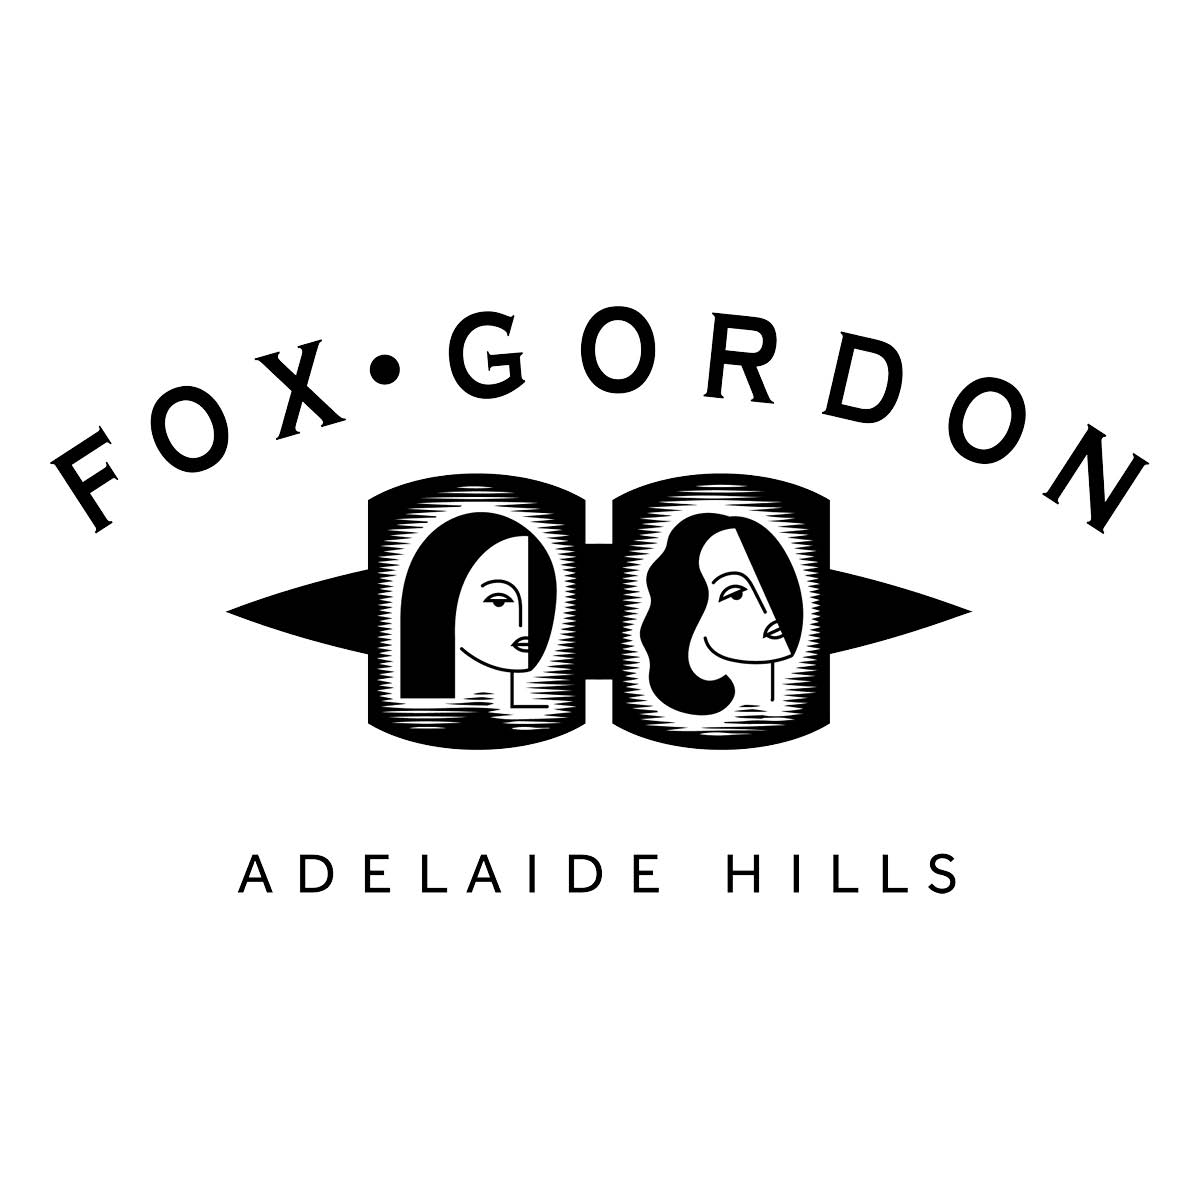 Fox Gordon